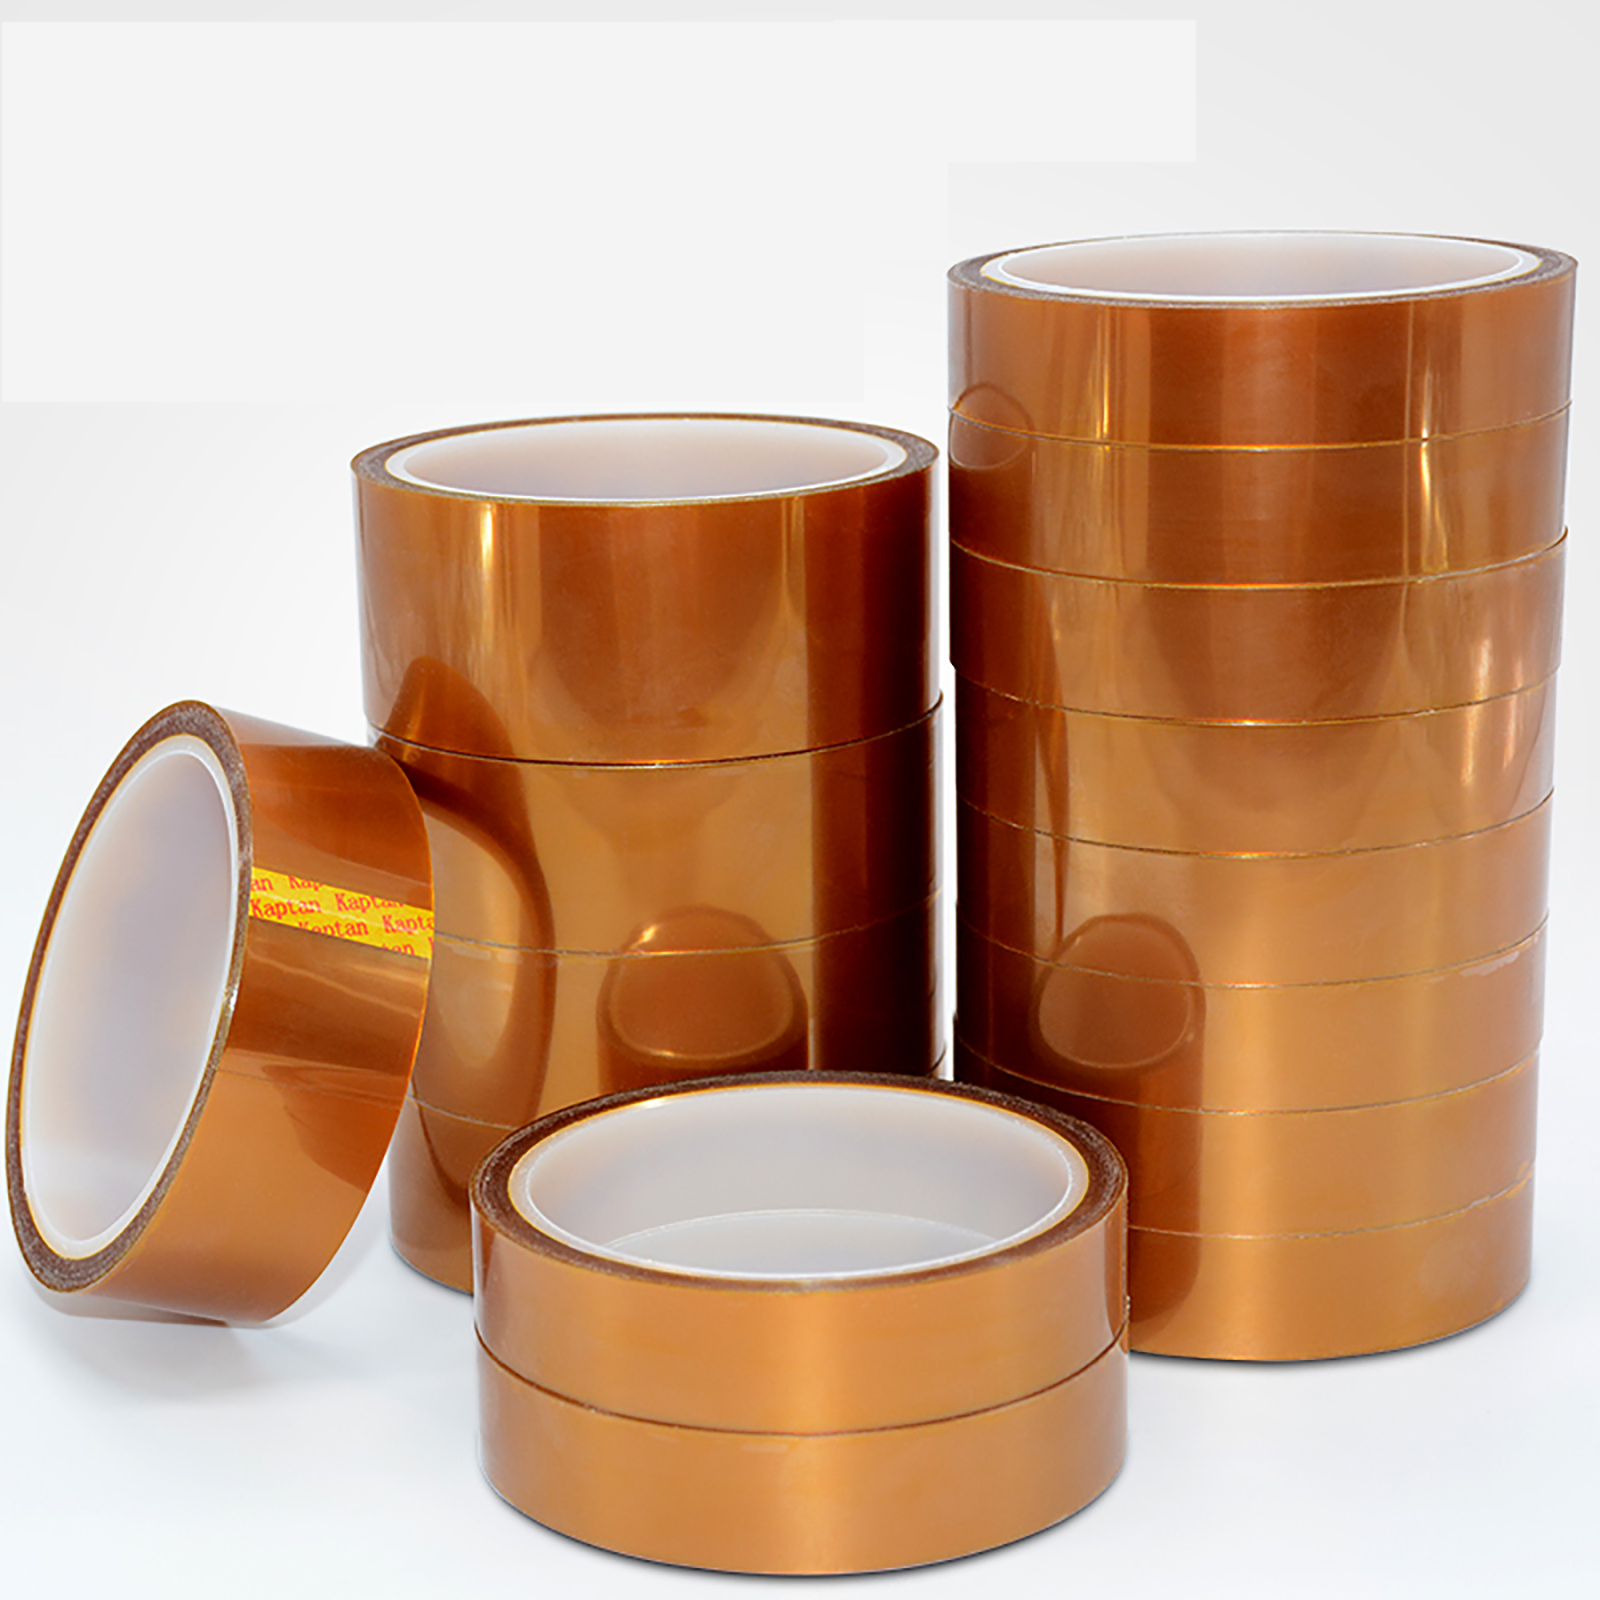 10M/Roll Double-sided Kapton Tape Adhesive High Temperature Heat Resistant Polyimide 0.1mm Thickness